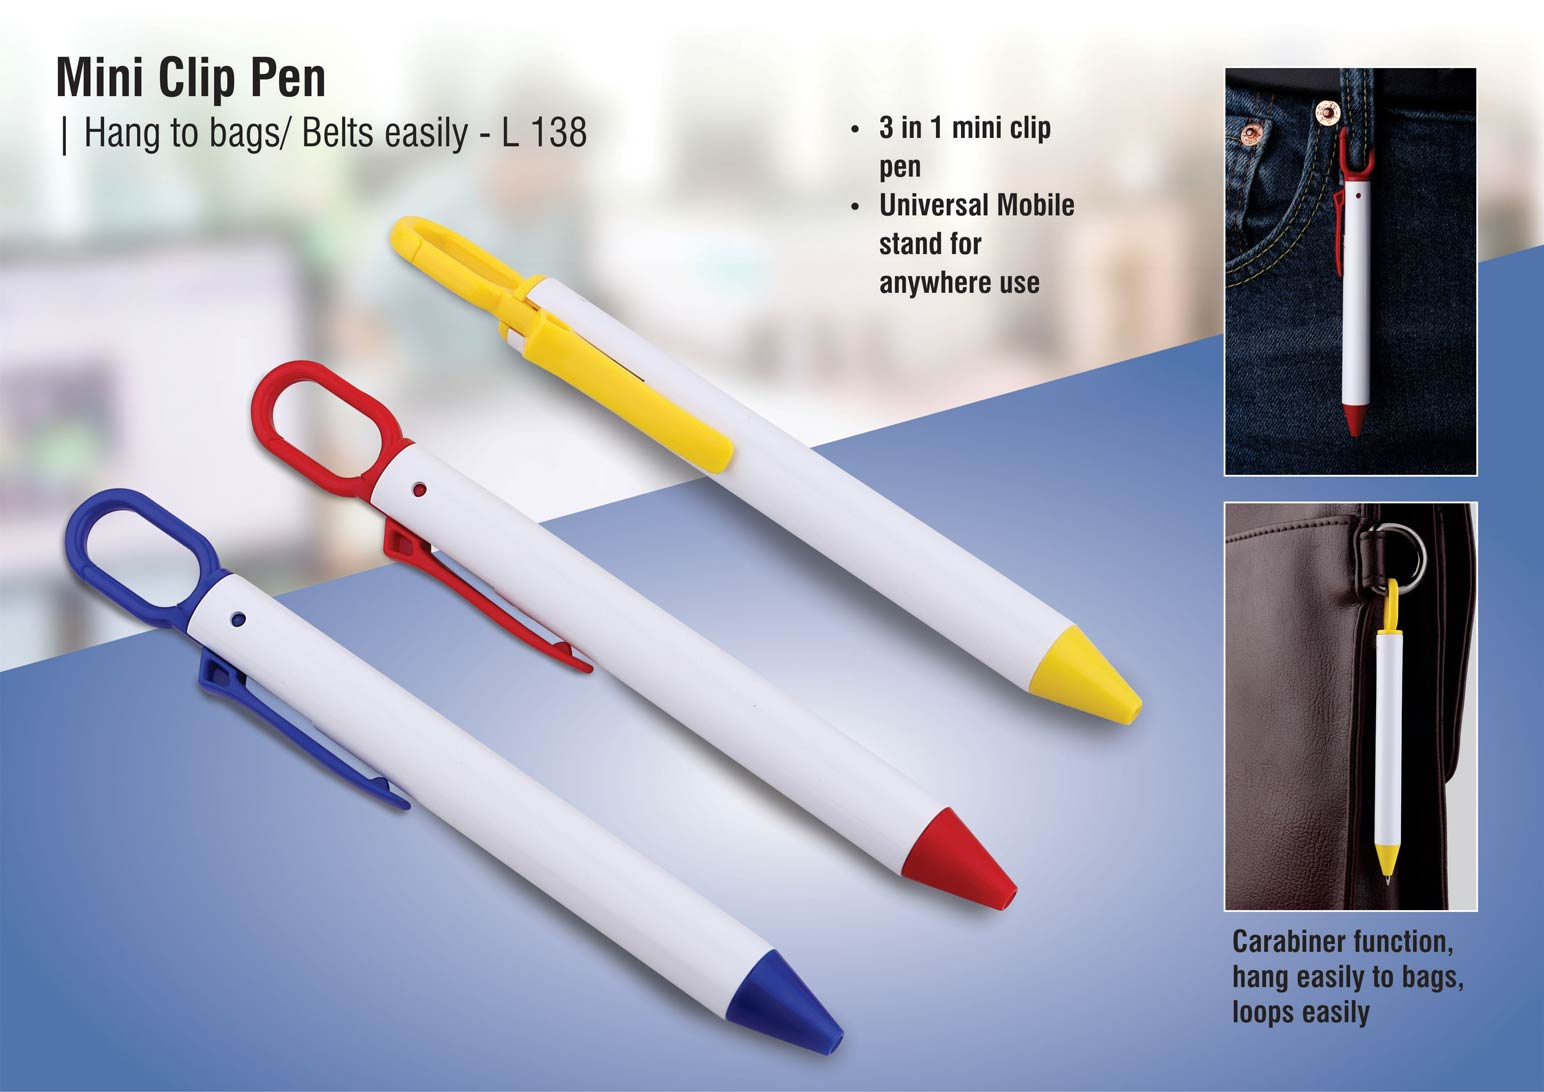 L138 - Mini clip pen | Hang to bags/ belts easily